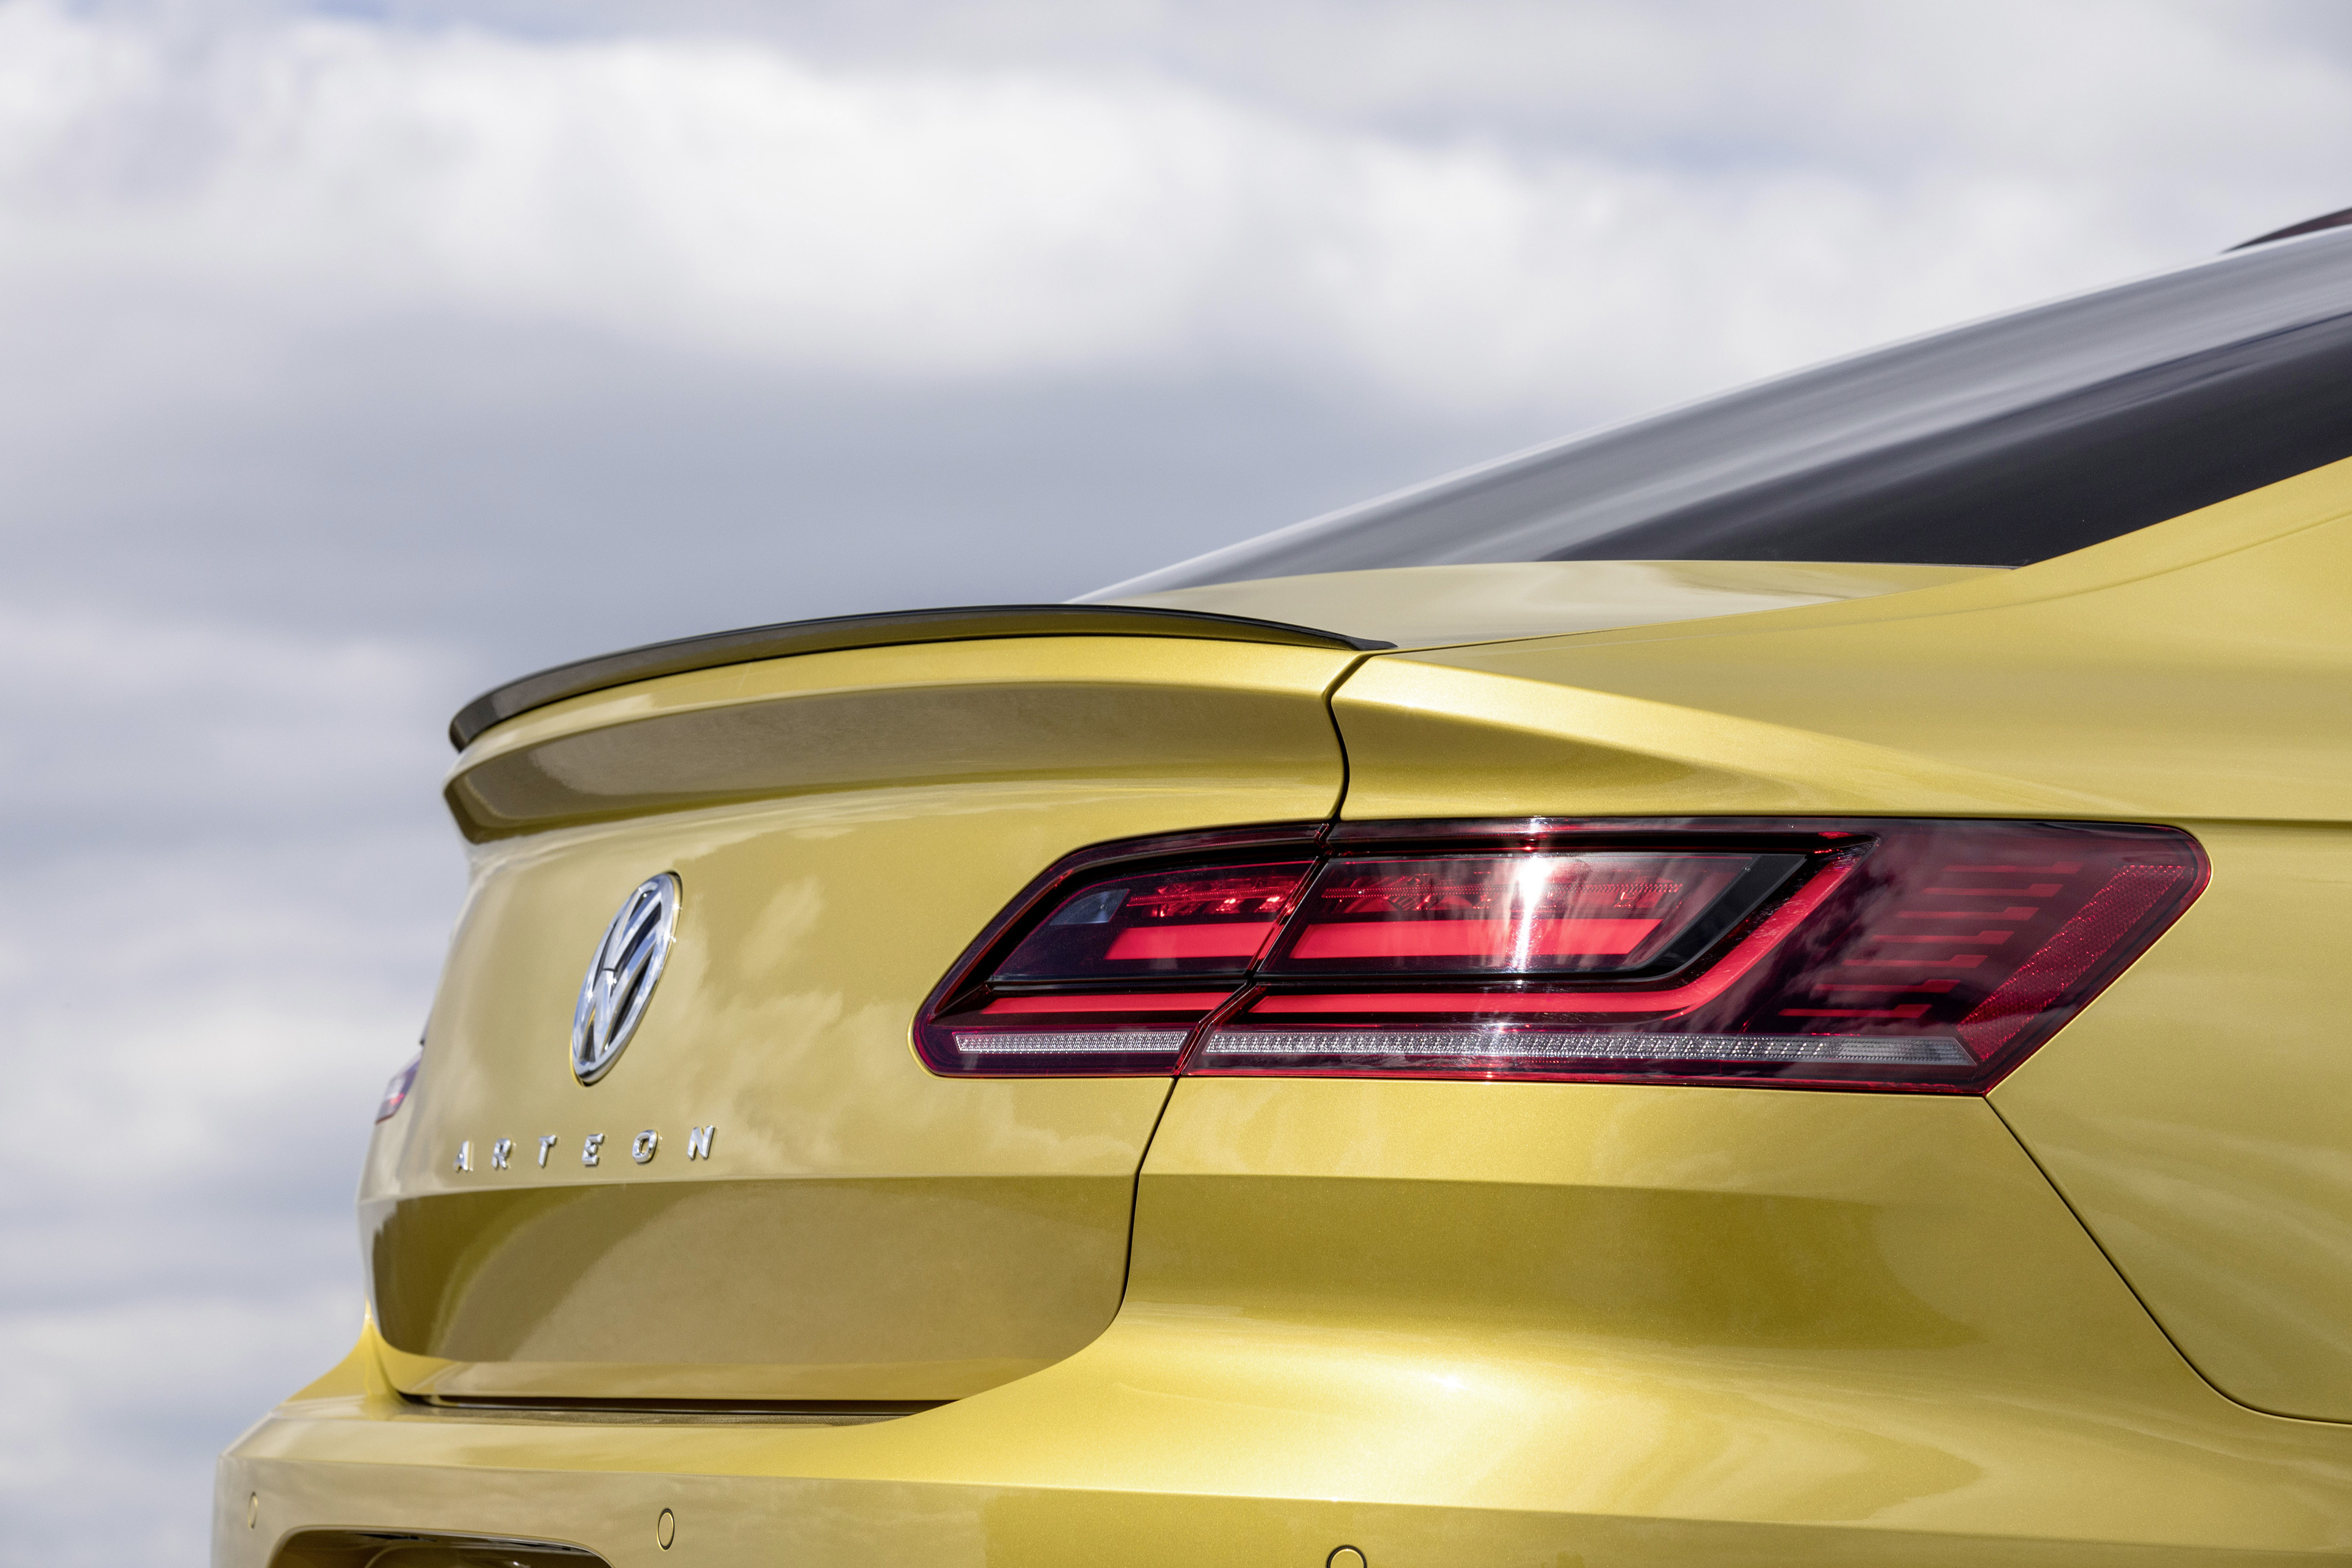 The subtle details of the Volkswagen Arteon R-Line